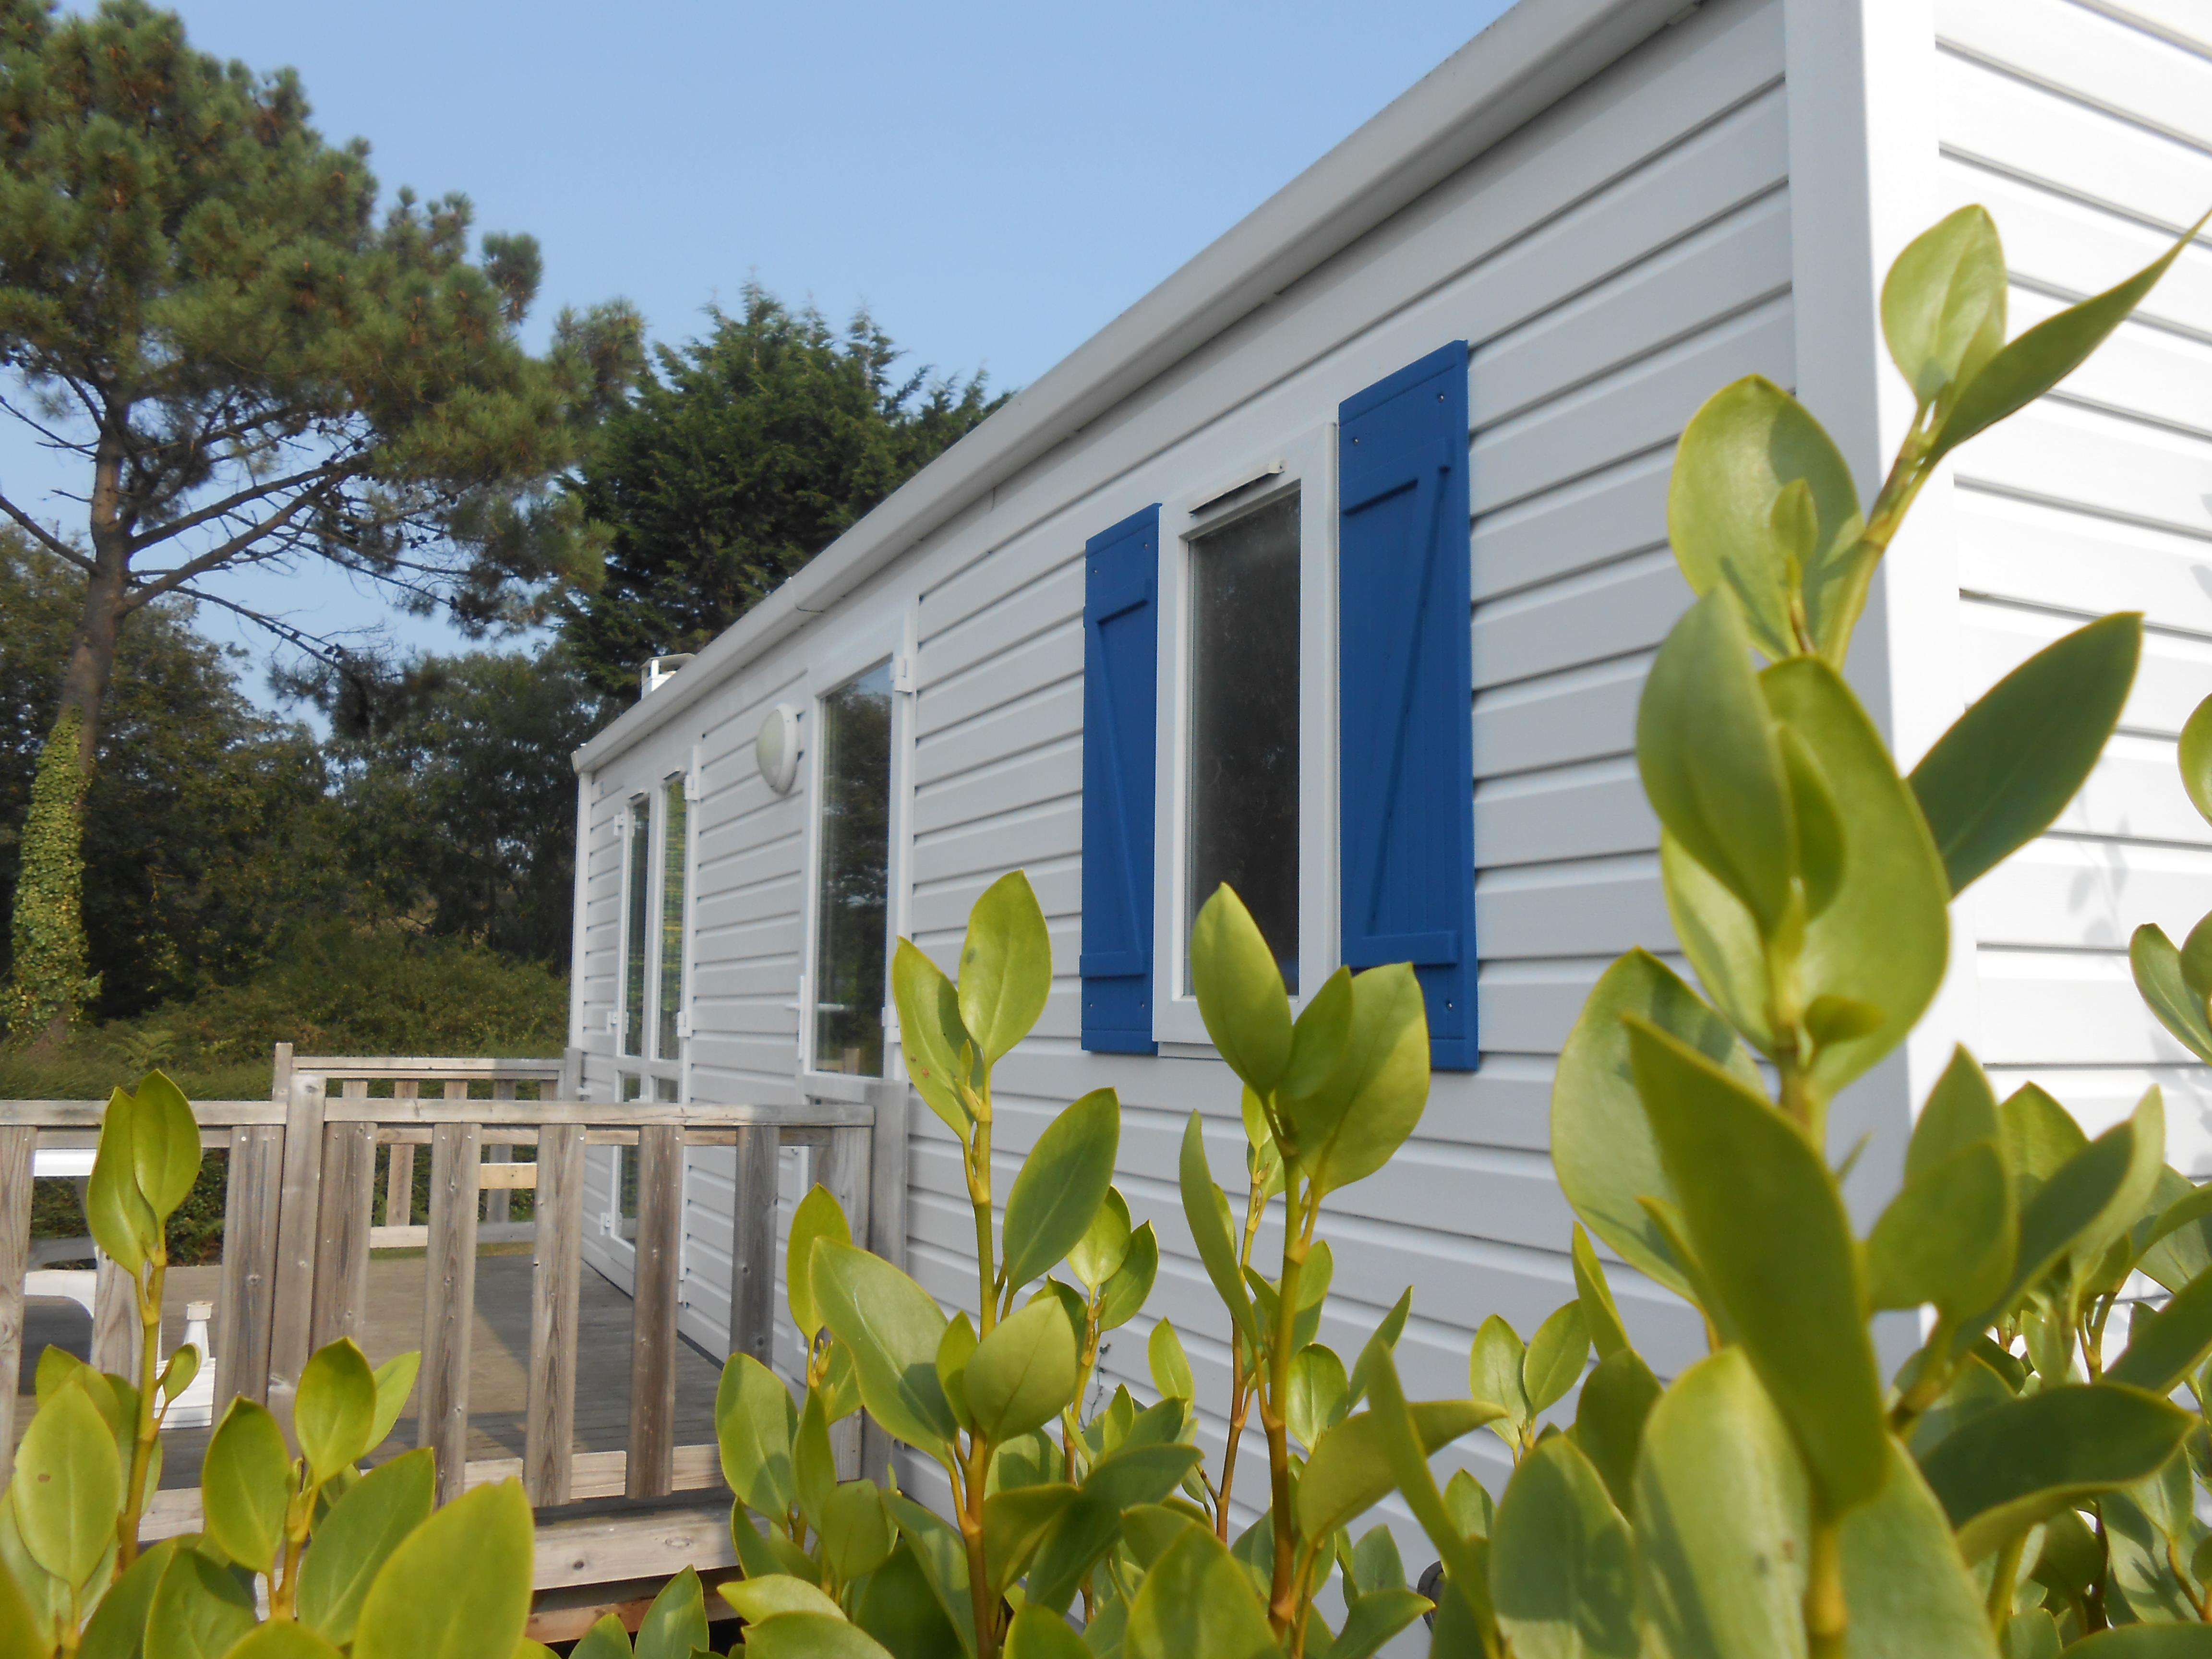 Locatifs - Mobile Home Mercure 27.5M² Avec Terrasse Non Couverte - Camping Le Panoramic